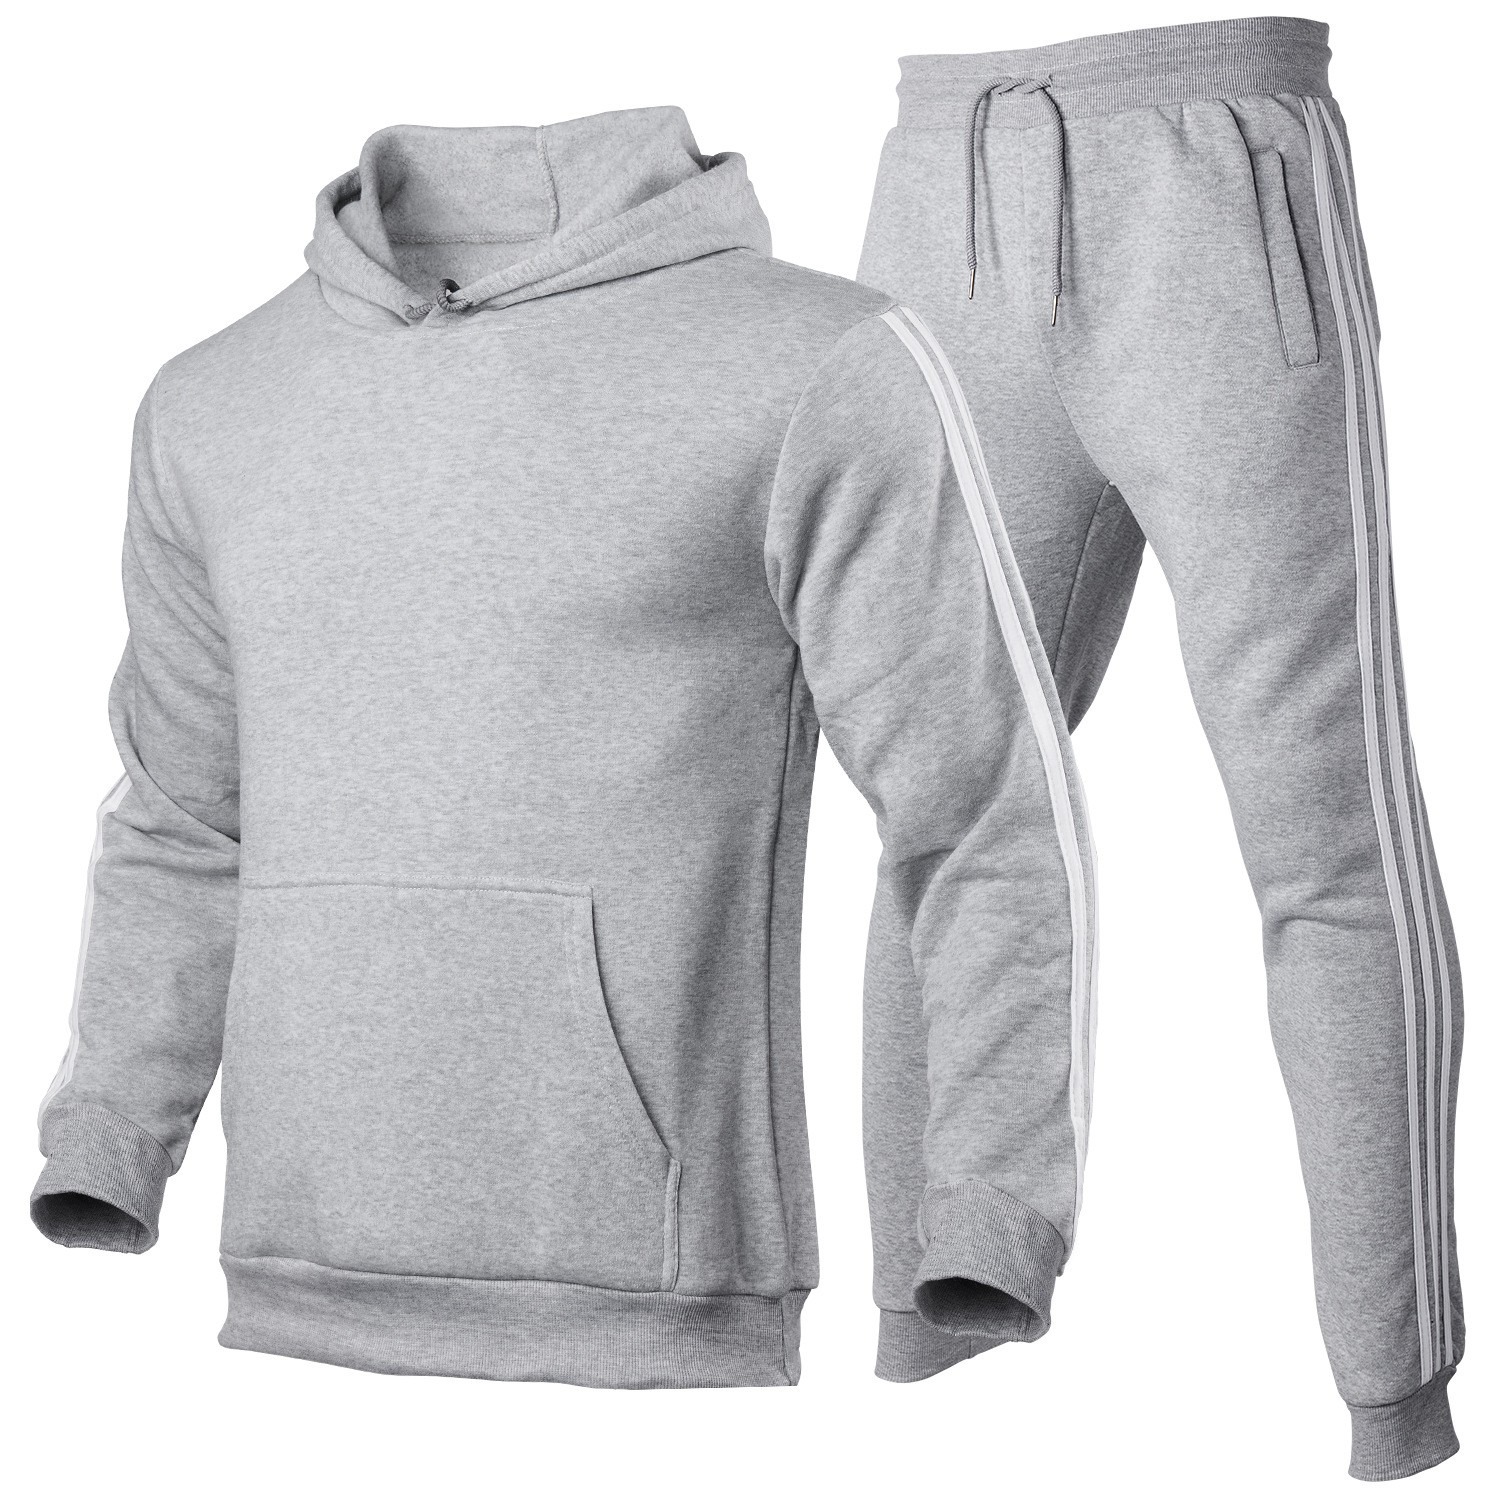 product-Whloesale Men Gym Suit Sport Tops Two Pieces Set Hoodie Workout Fitness Wear-Ruiteng-img